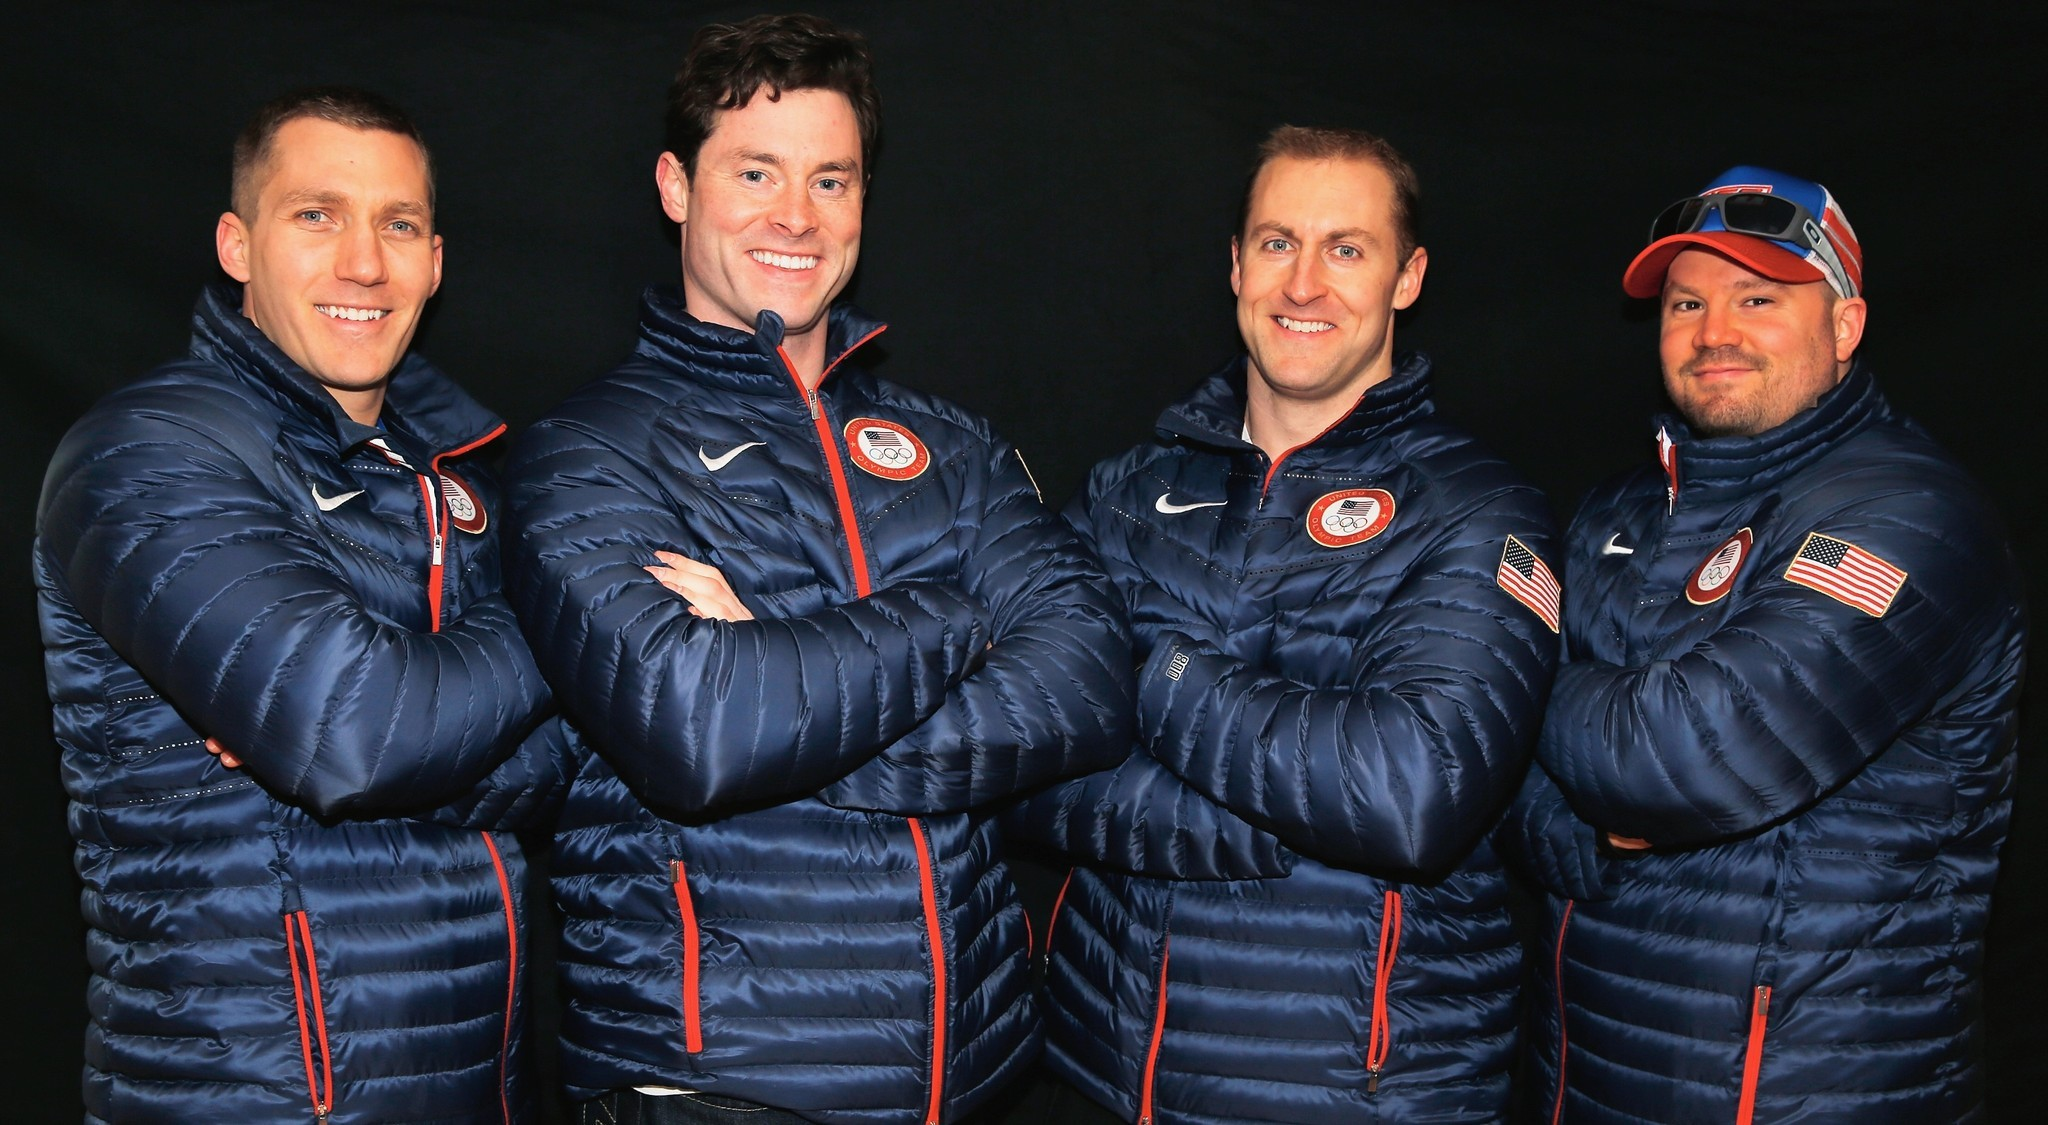 Stephen Langton American bobsledder wallpapers and images 2048x1125